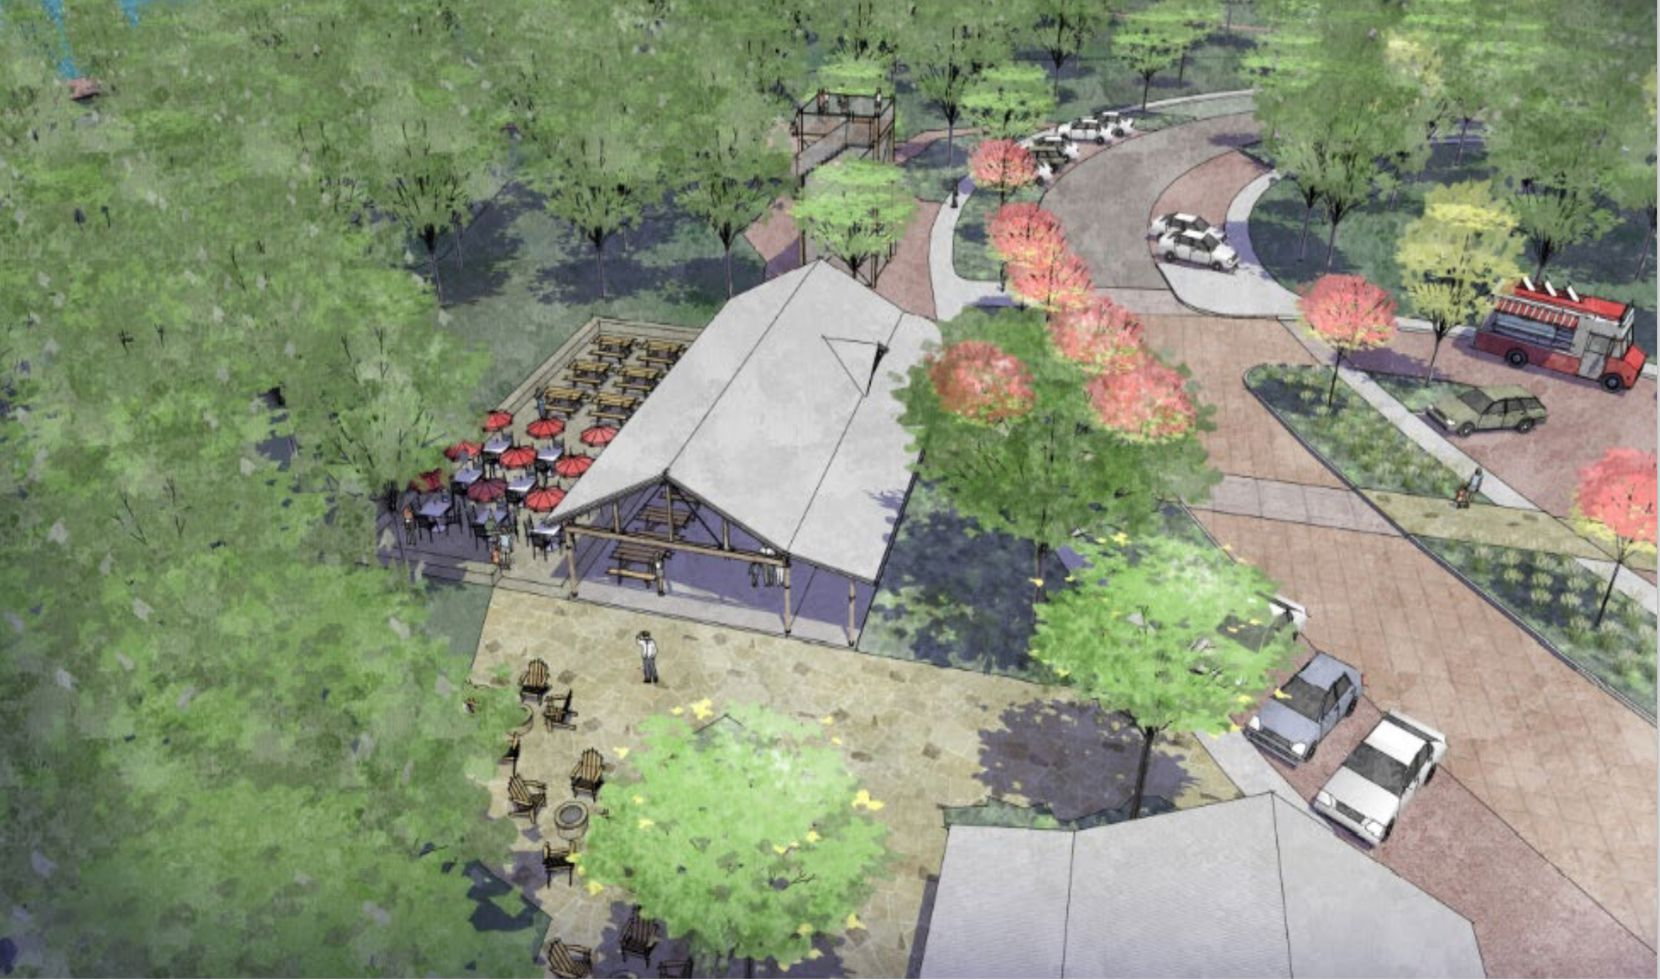 Painted Tree's community center will be styled after a trailhead outpost.